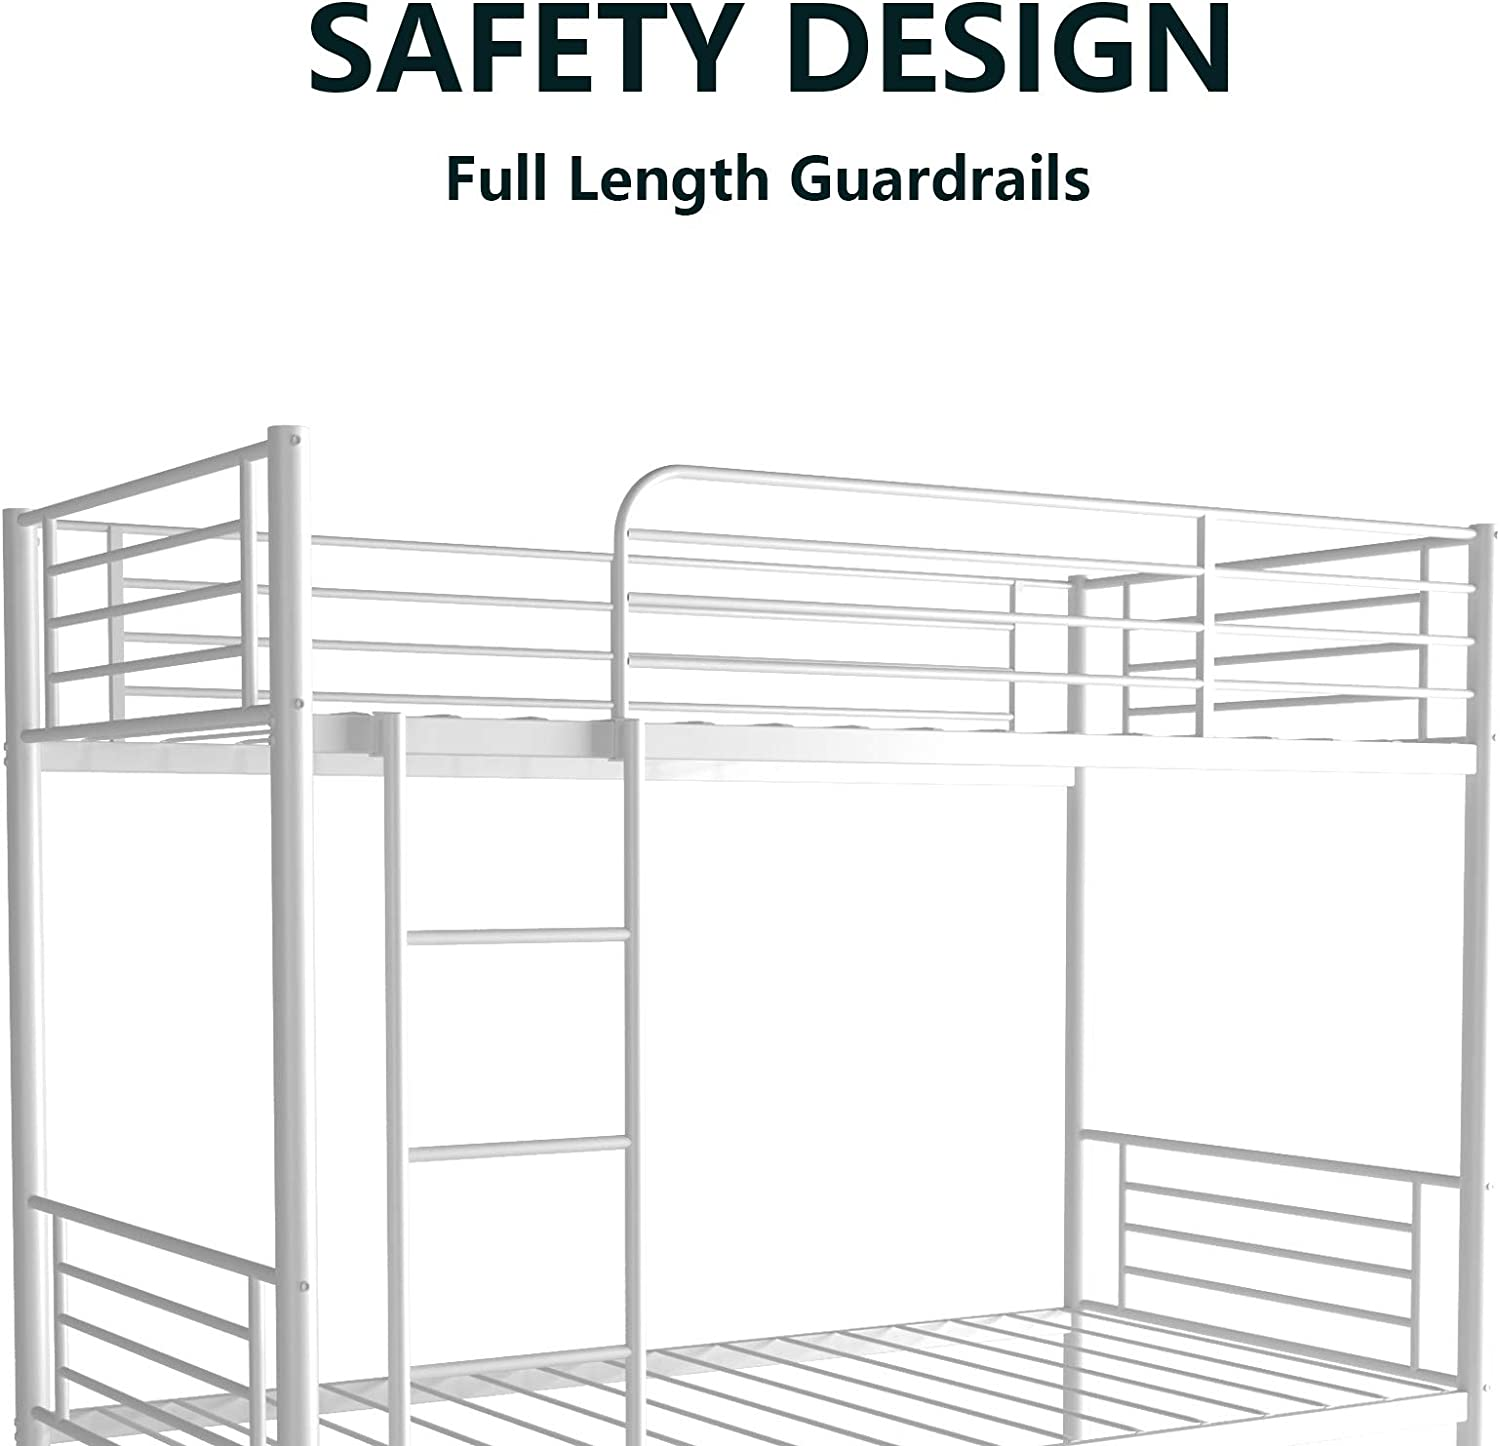 White Mecor Twin Over Twin Metal Bunk Bed Sturdy Frame With Metal Slats Safety Guard Rail Removable Ladder For Kids Adults Teens Furniture Home Kitchen Fcteutonia05 De